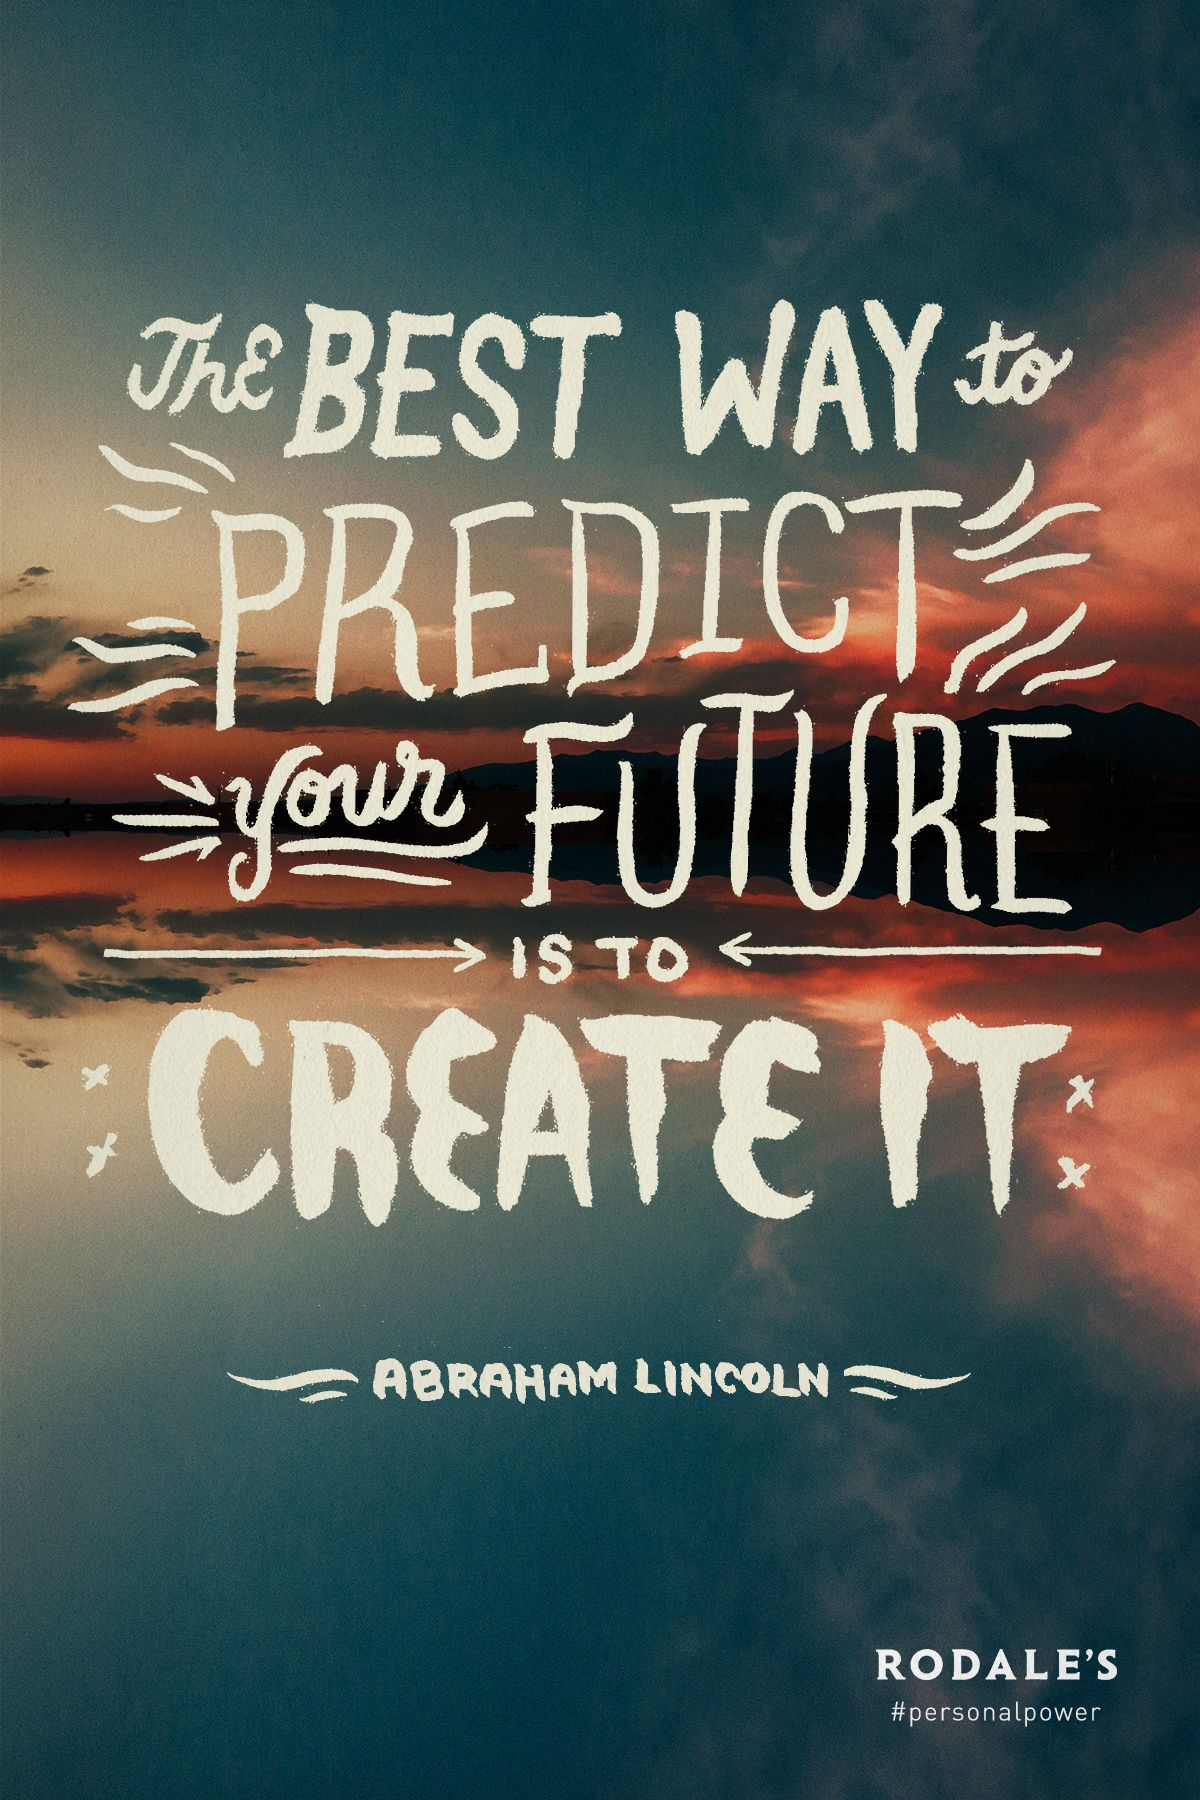 The Best Way To Predict Your Future Is To Create Itabraham